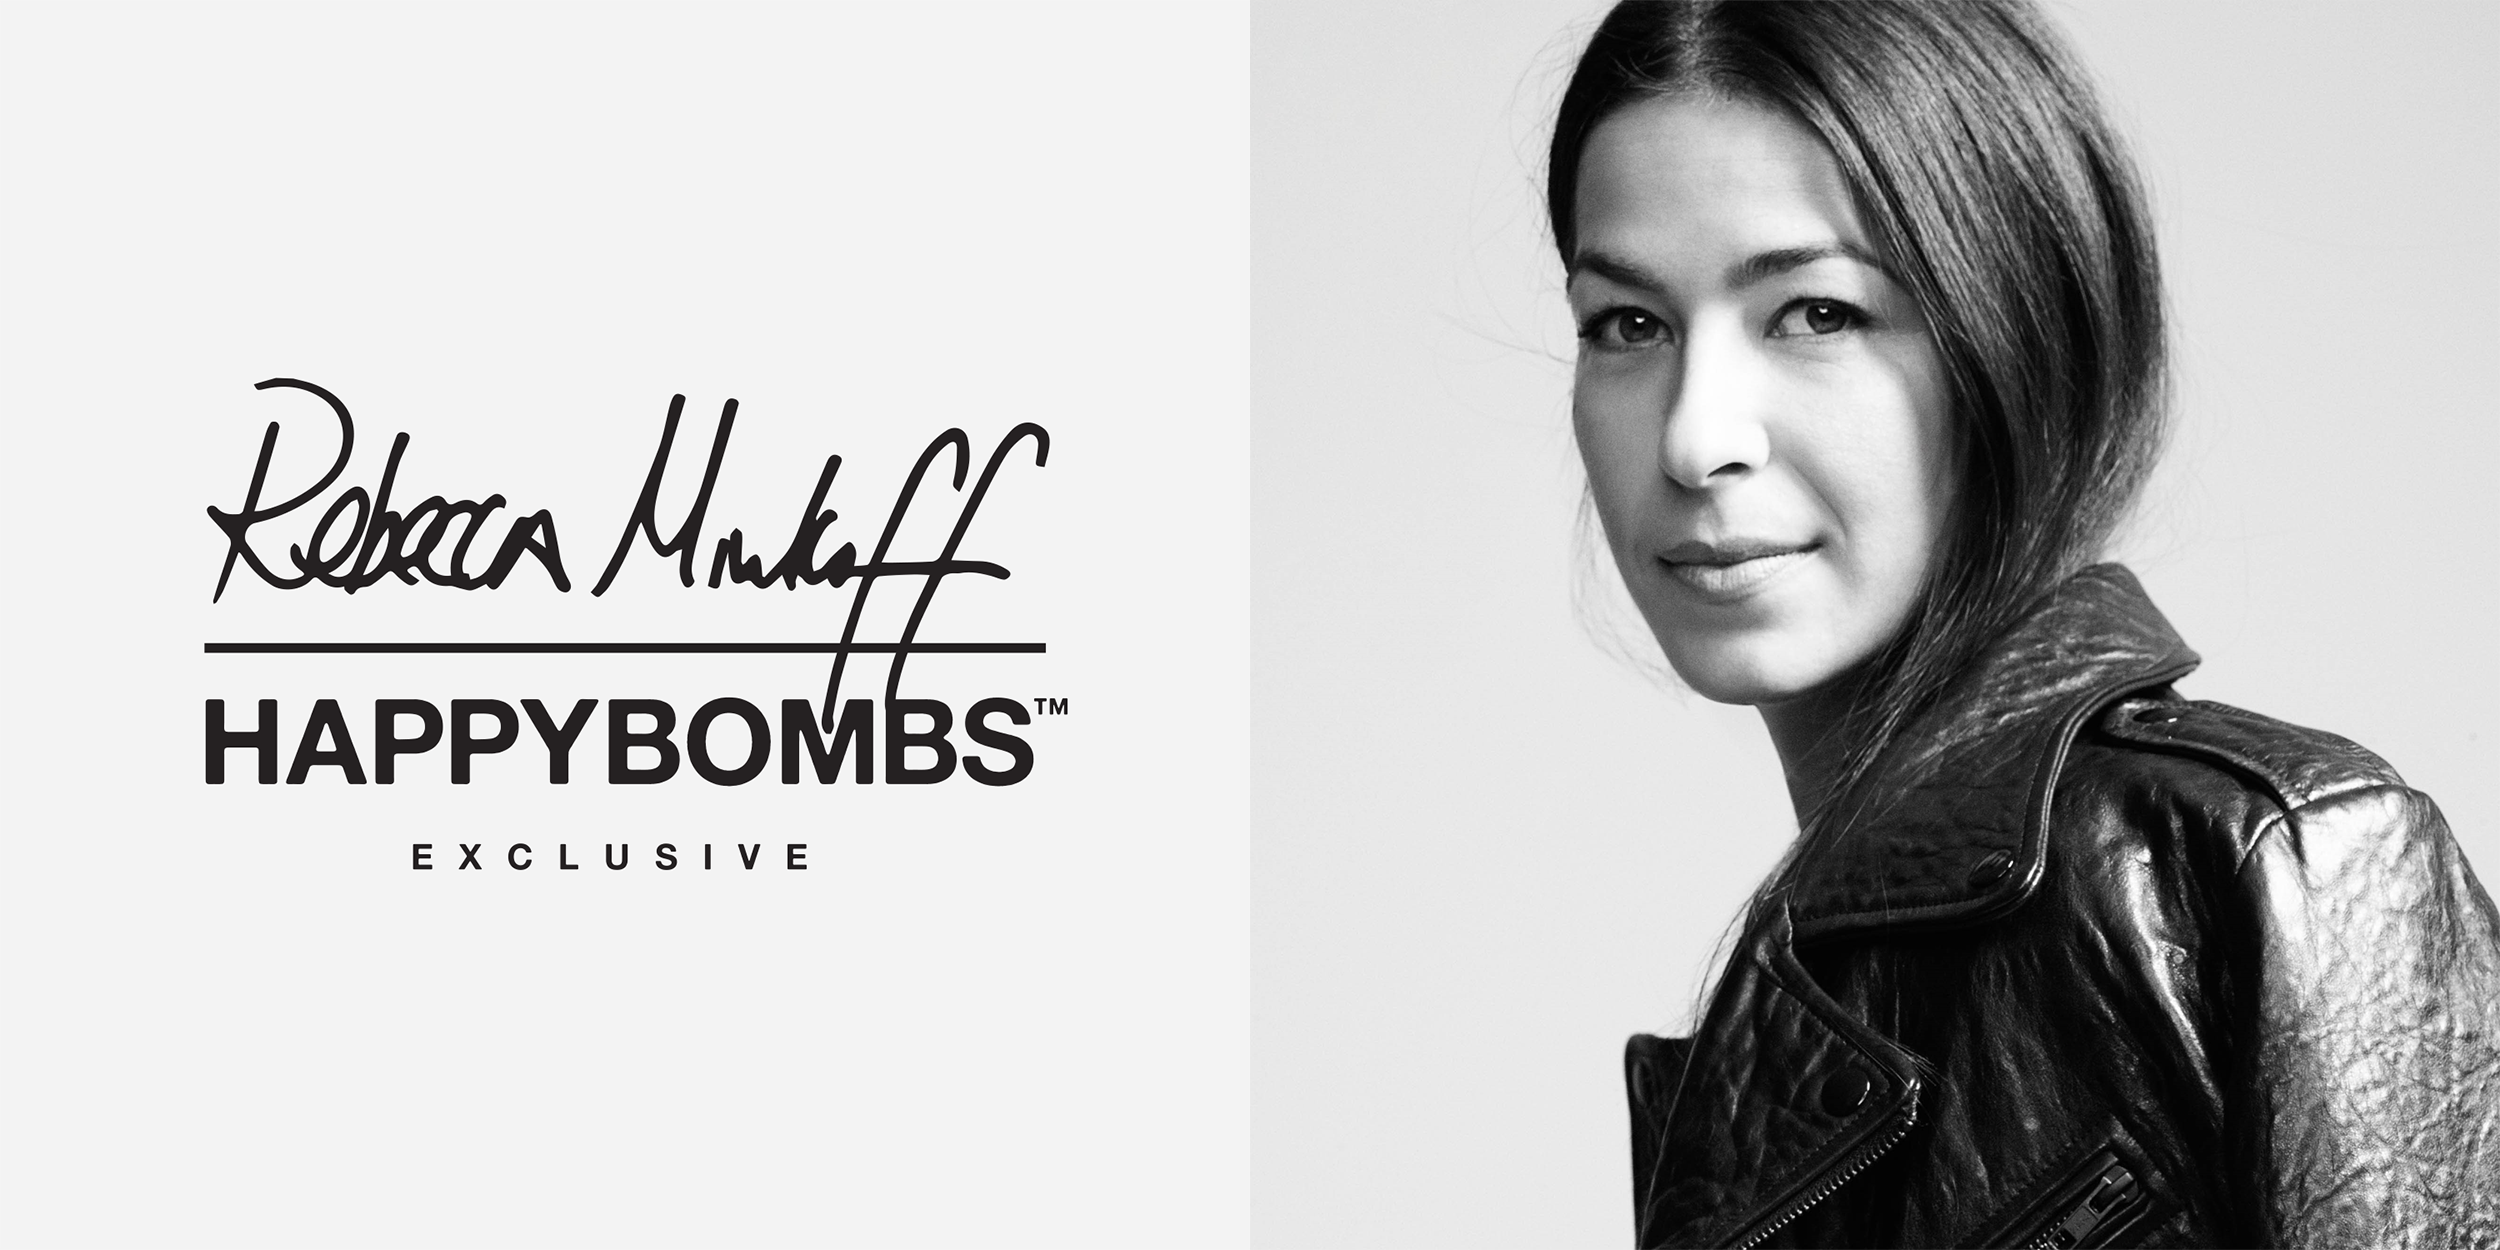 boom-happybombs-p100Minkoff.png